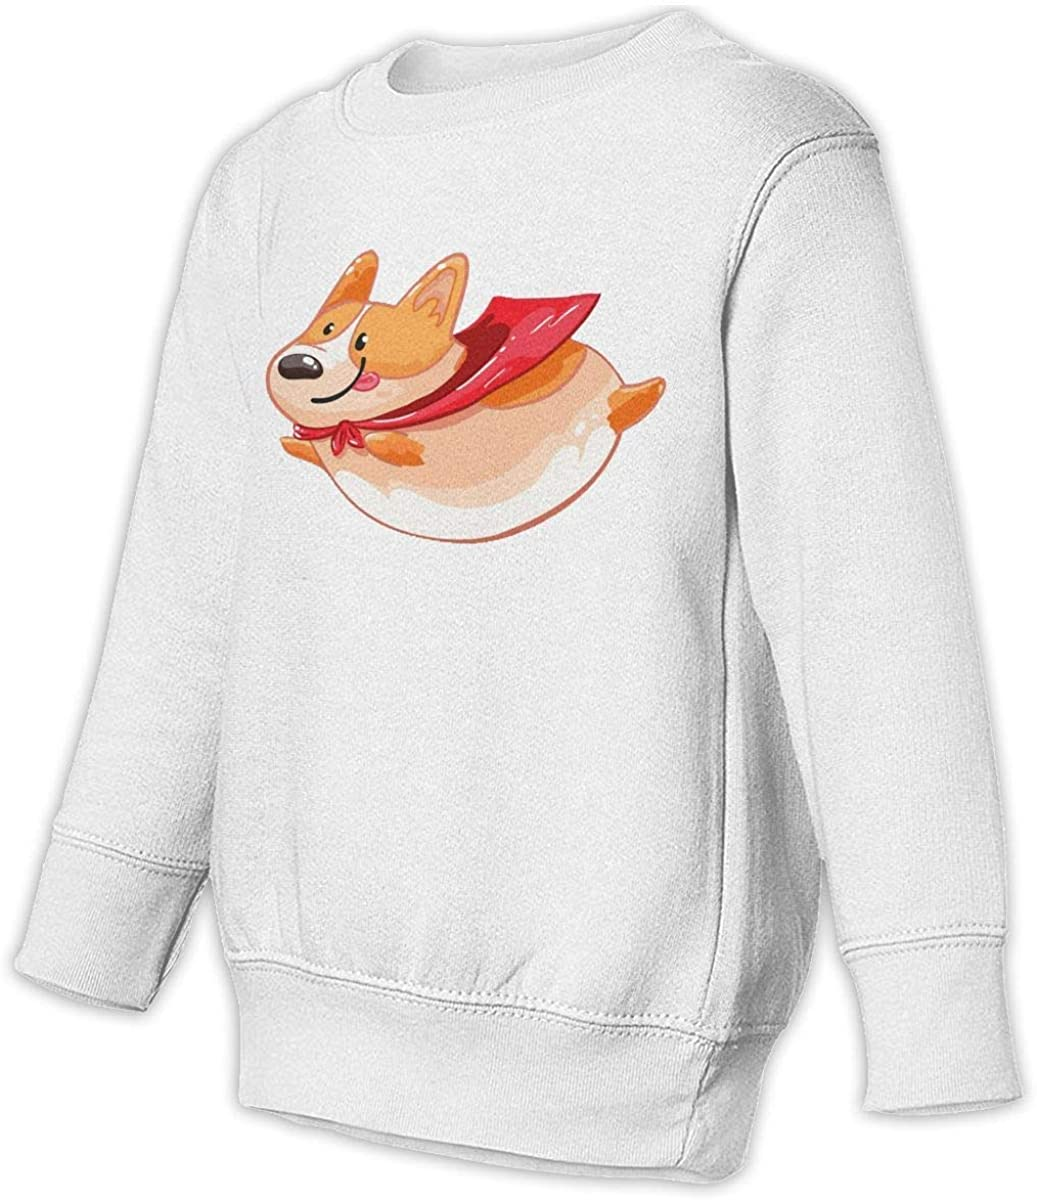 wudici Flying Squirrel Boys Girls Pullover Sweaters Crewneck Sweatshirts Clothes for 2-6 Years Old Children